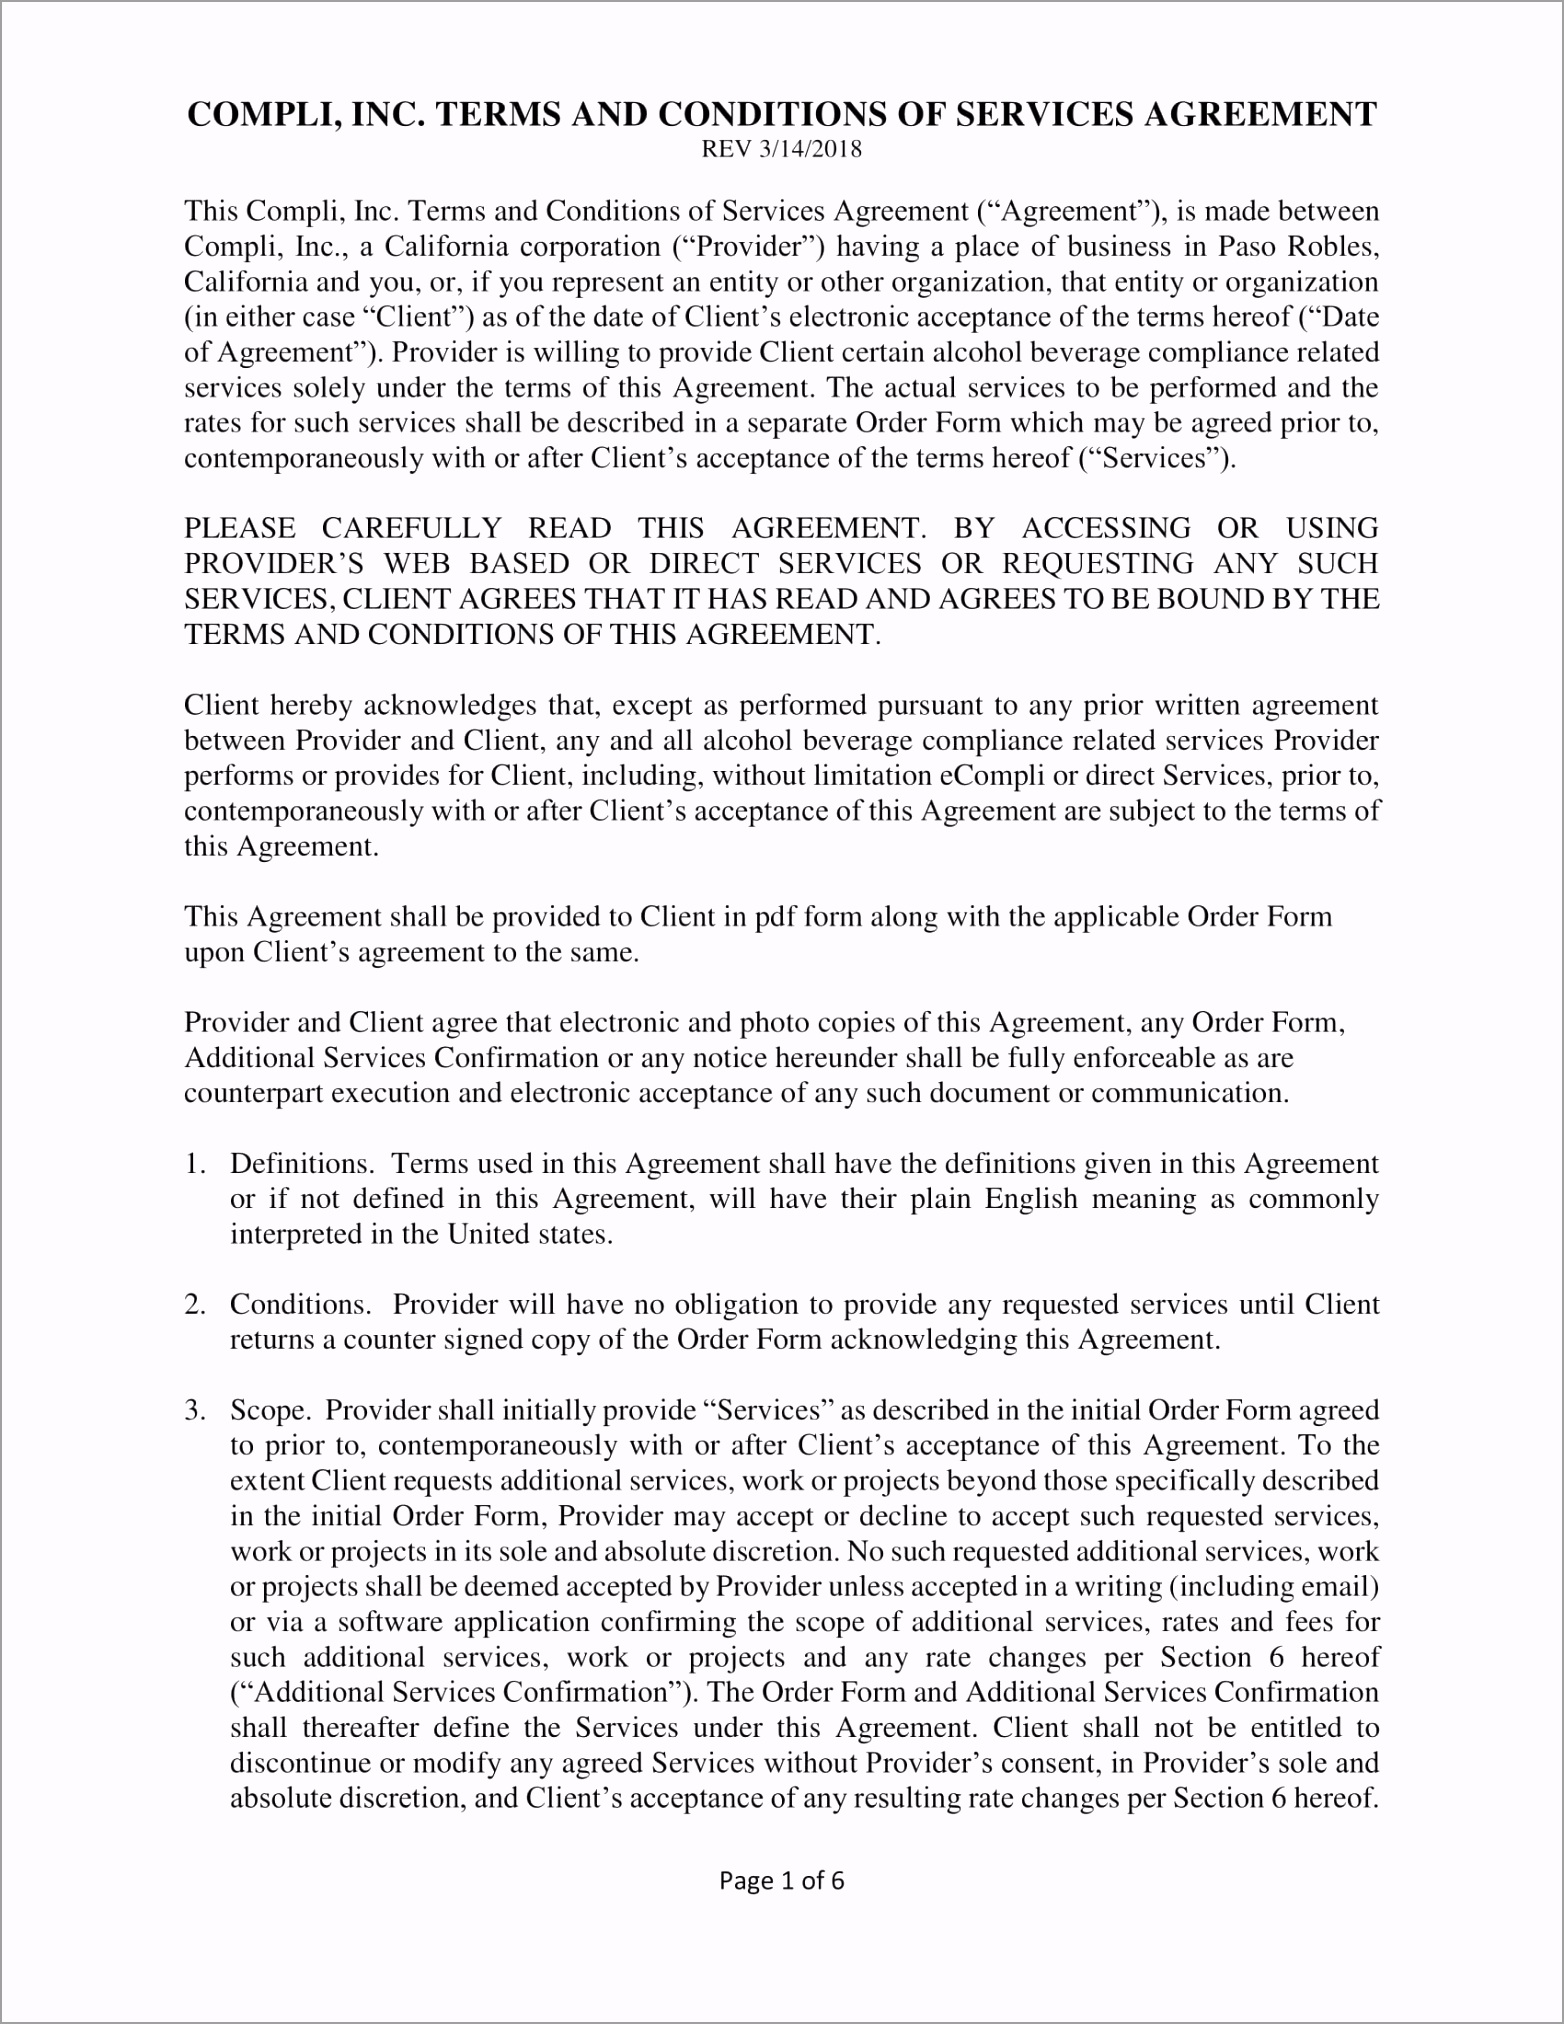 Services Agreement Contract Template Example 1 wyiwc